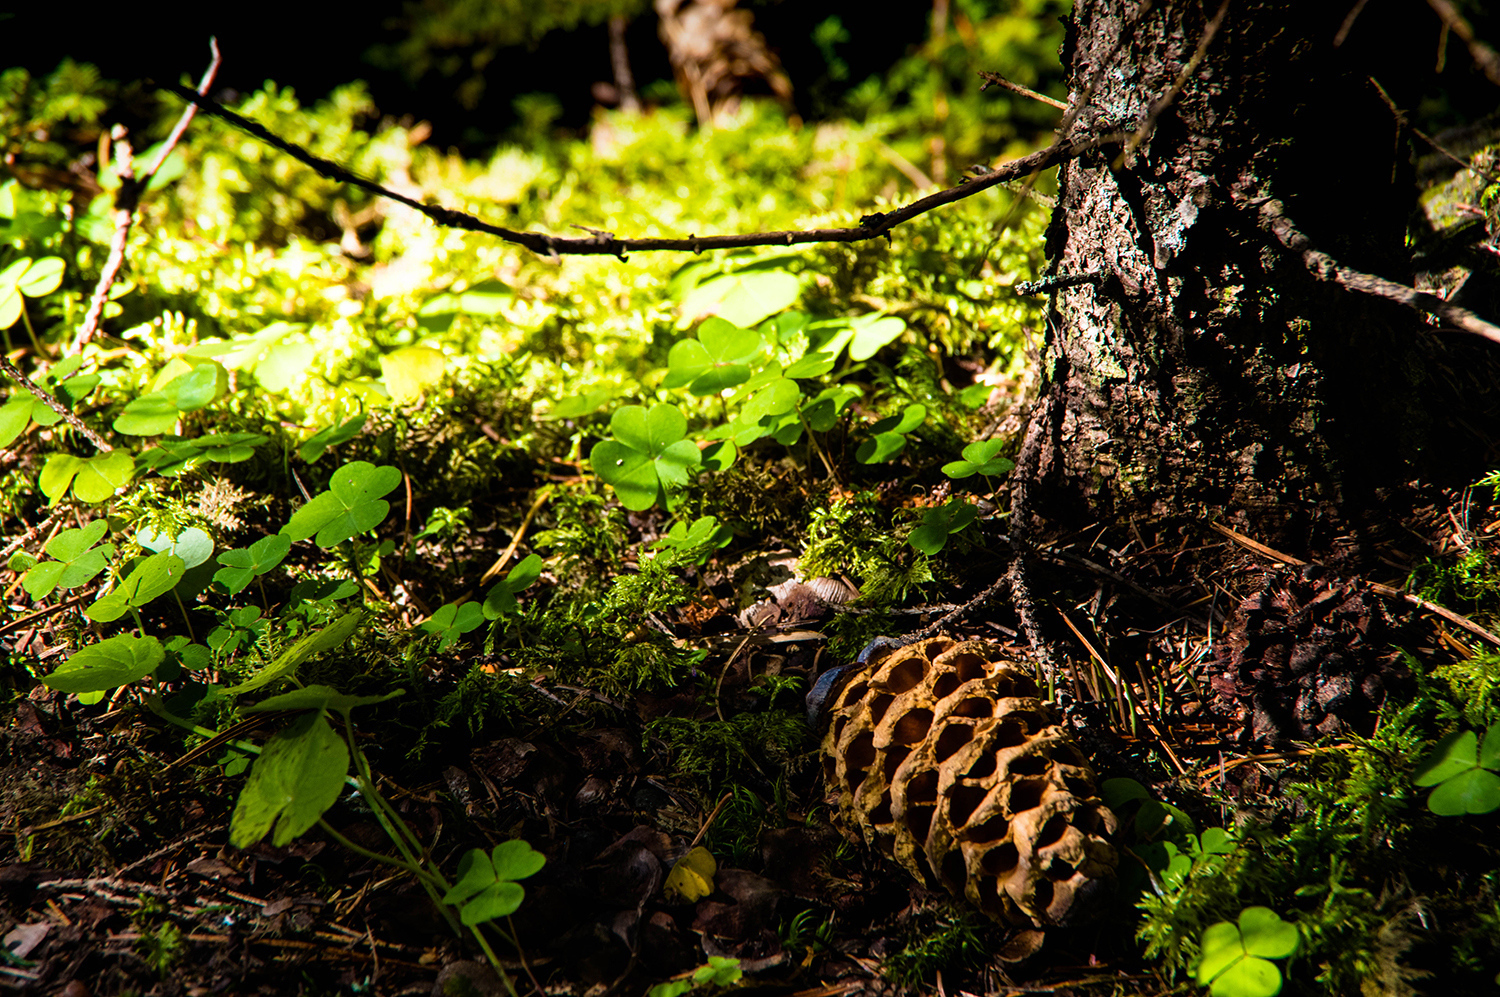 <p>A miniature still-life scene found in a forest in the Dolomites.</p>